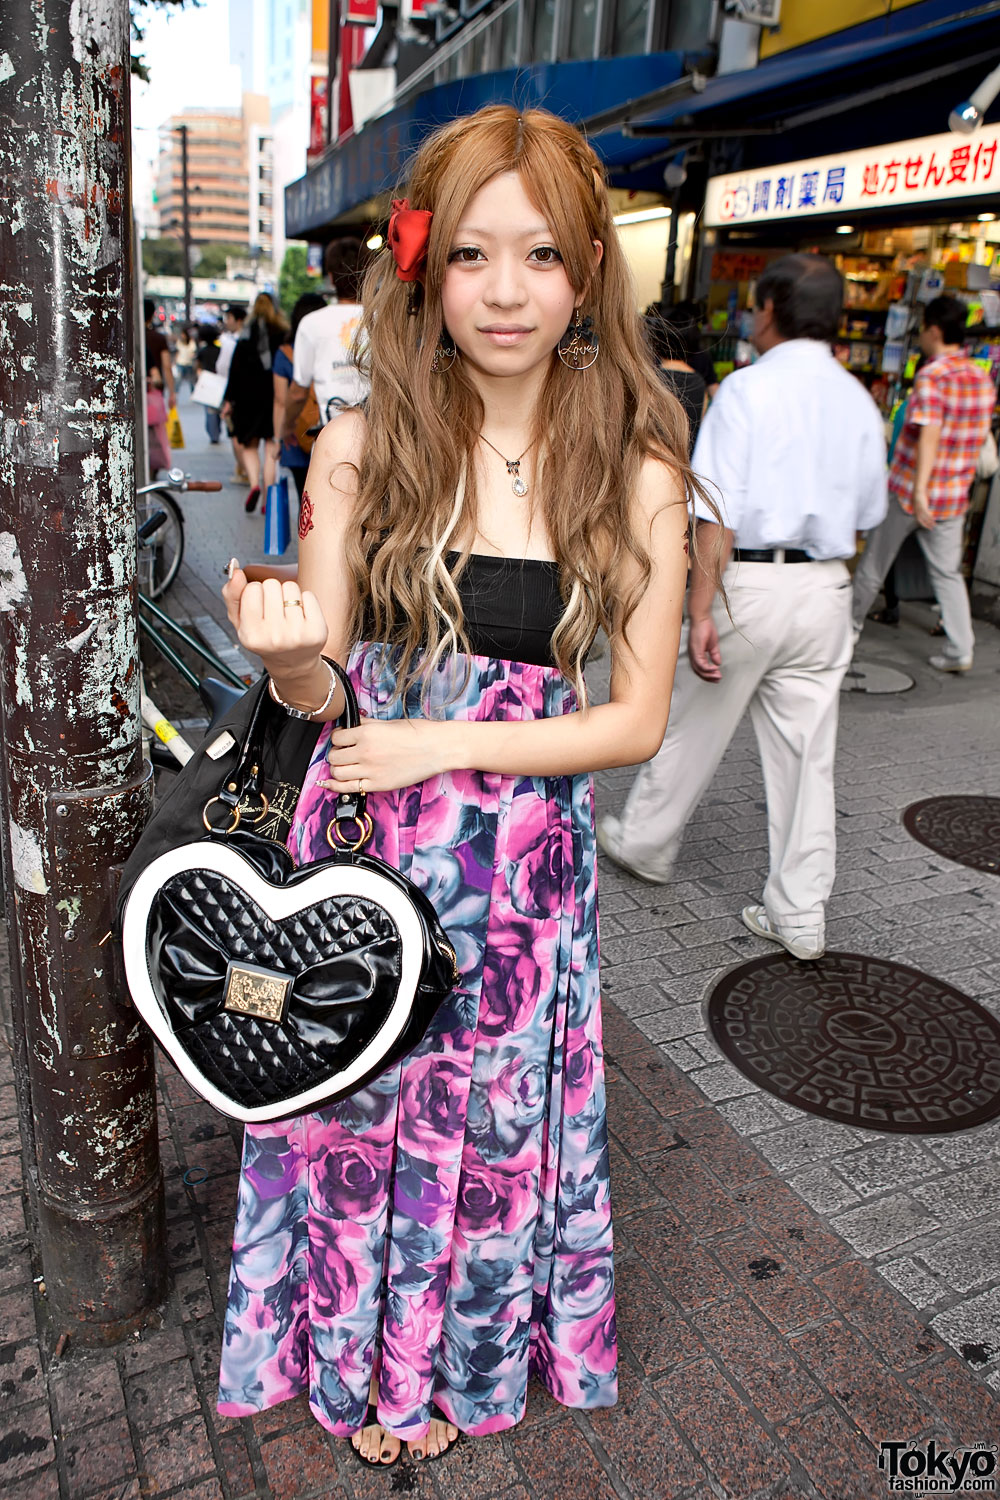 Shibuya Girl in Long Rose-Print Dress